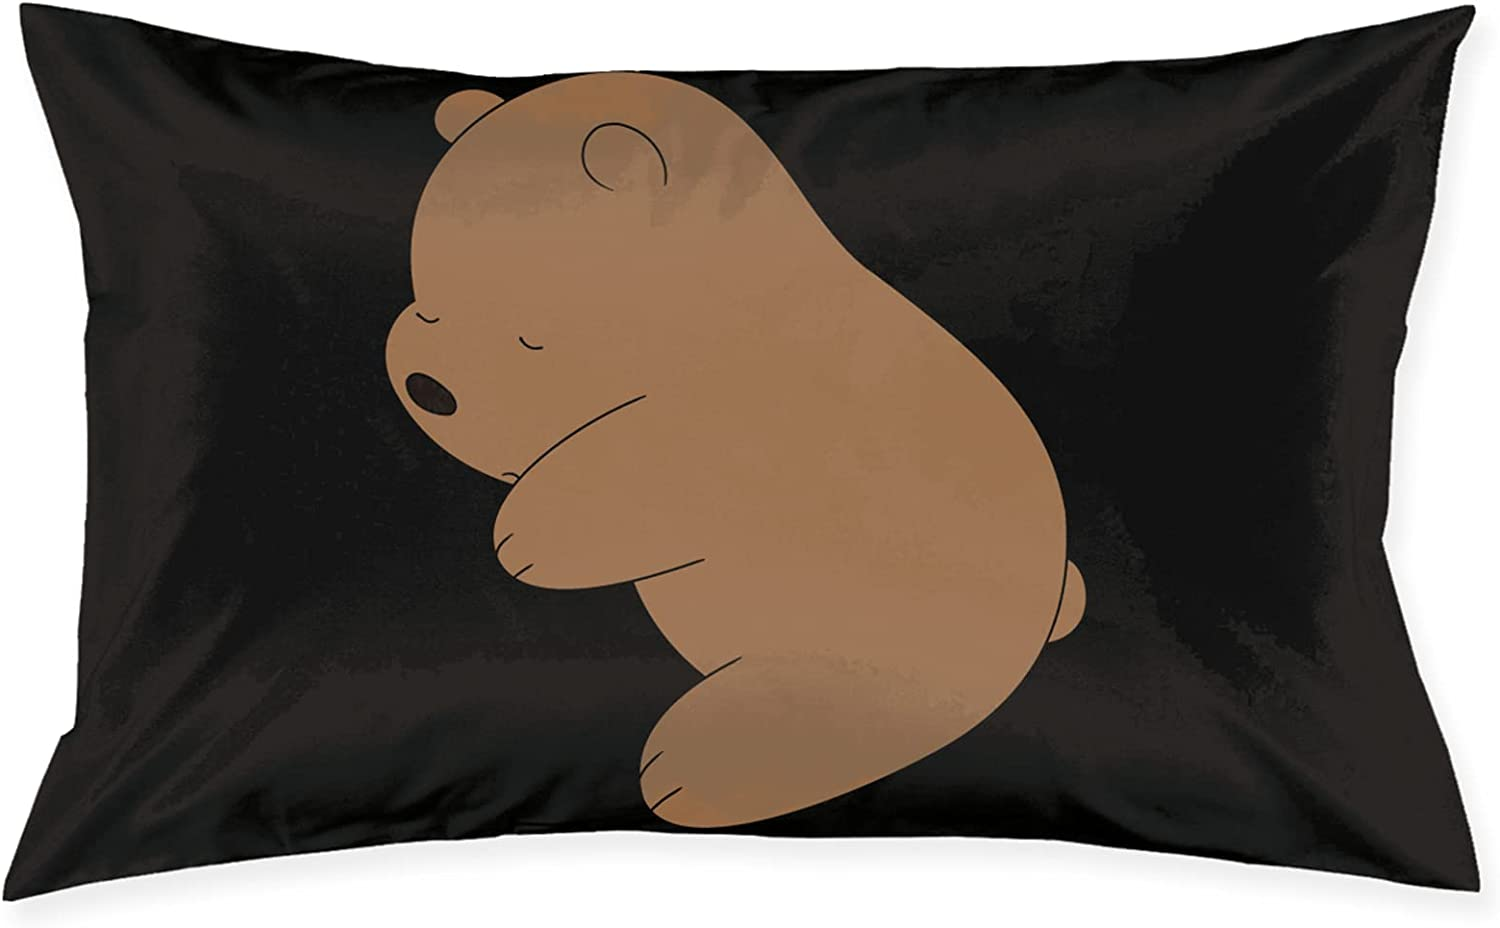 AMCEUFPSM We Long Beach Mall Bare Bears Grizzly Pillowcase Outlet SALE Suite Ro Cushion Bear